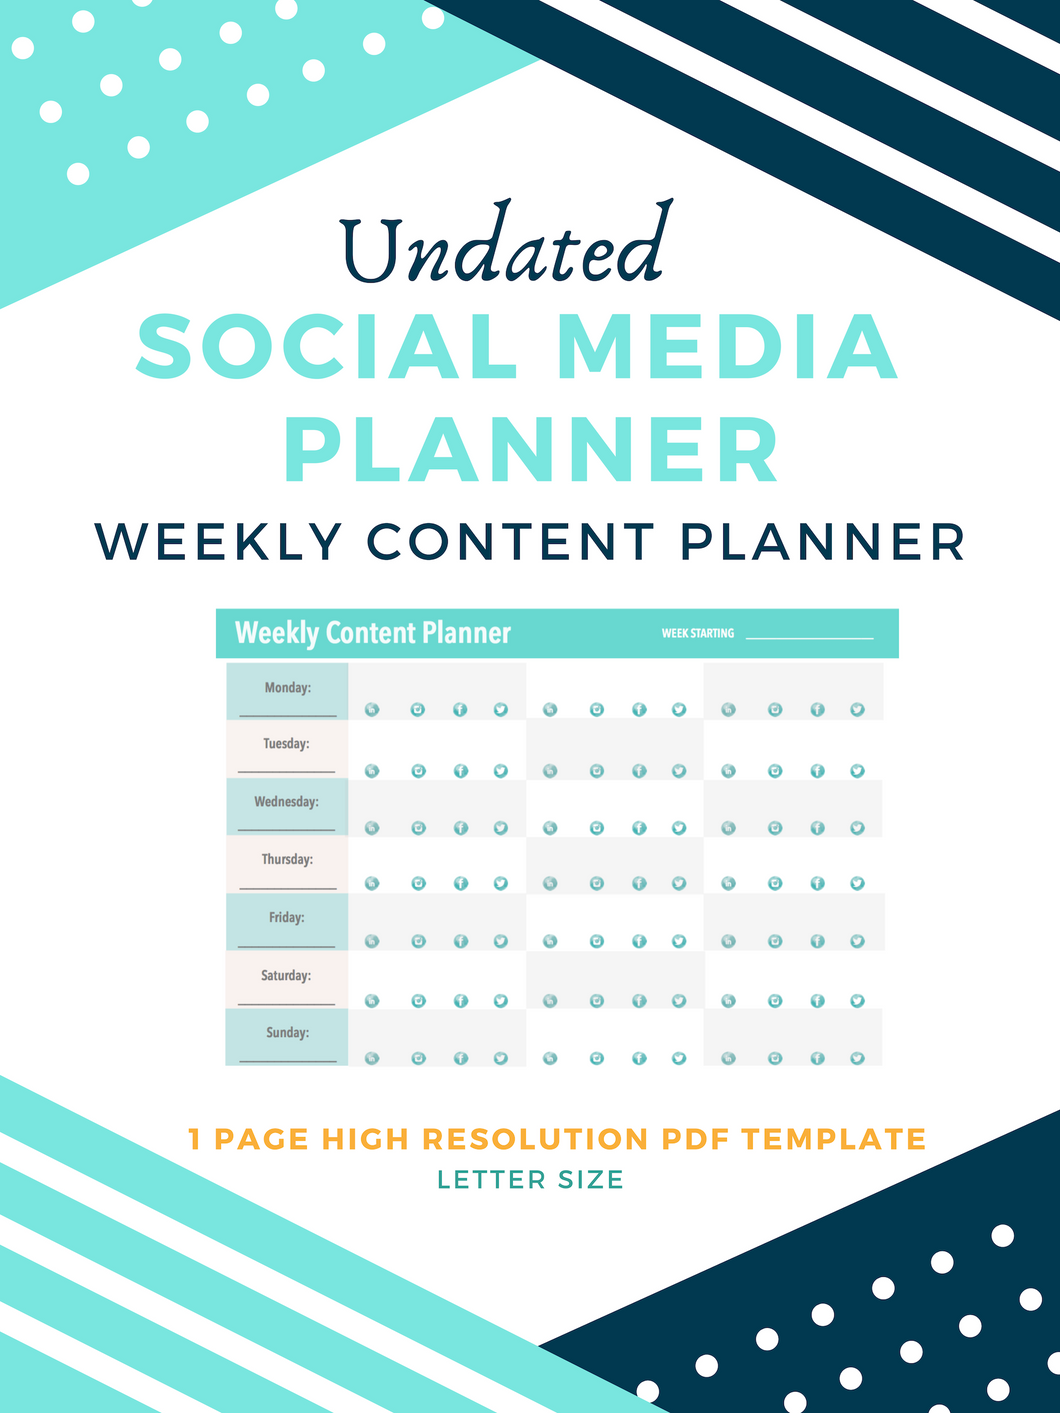 Weekly Social Media Calendar (UNDATED)